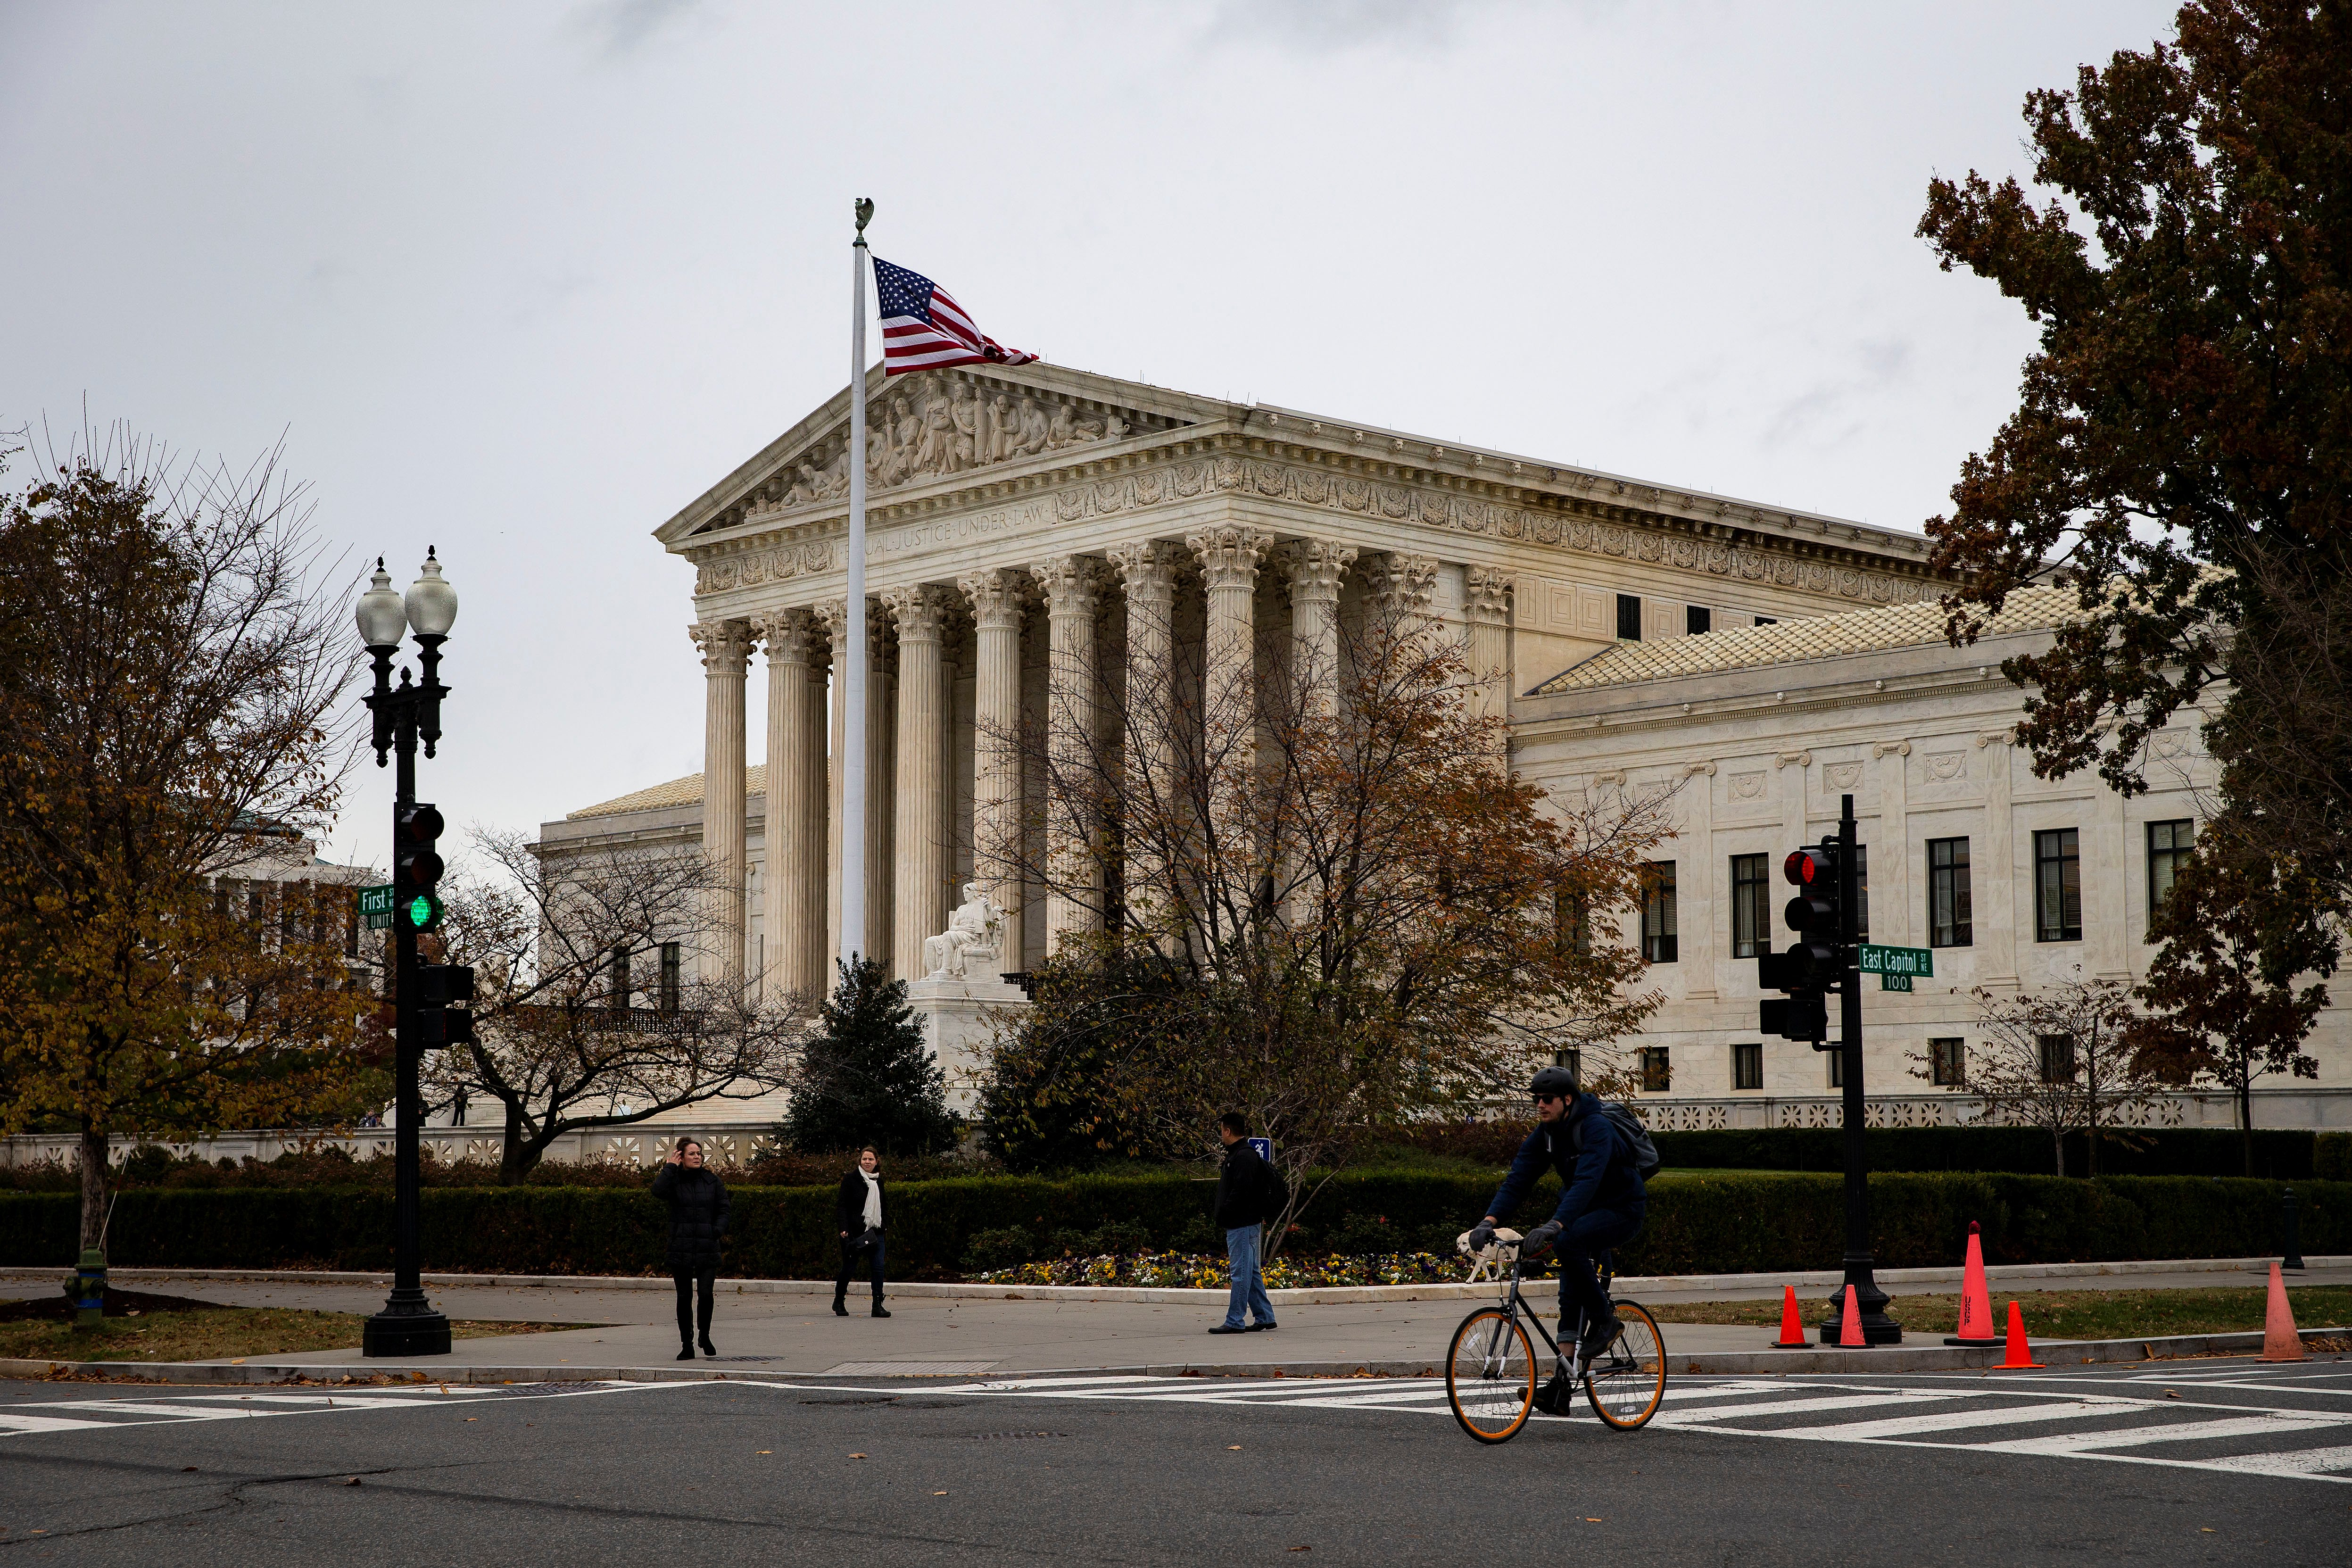 A man rides a bicycle past the Supreme Court in Washington, U.S., November 13, 2018. REUTERS/Al Drago